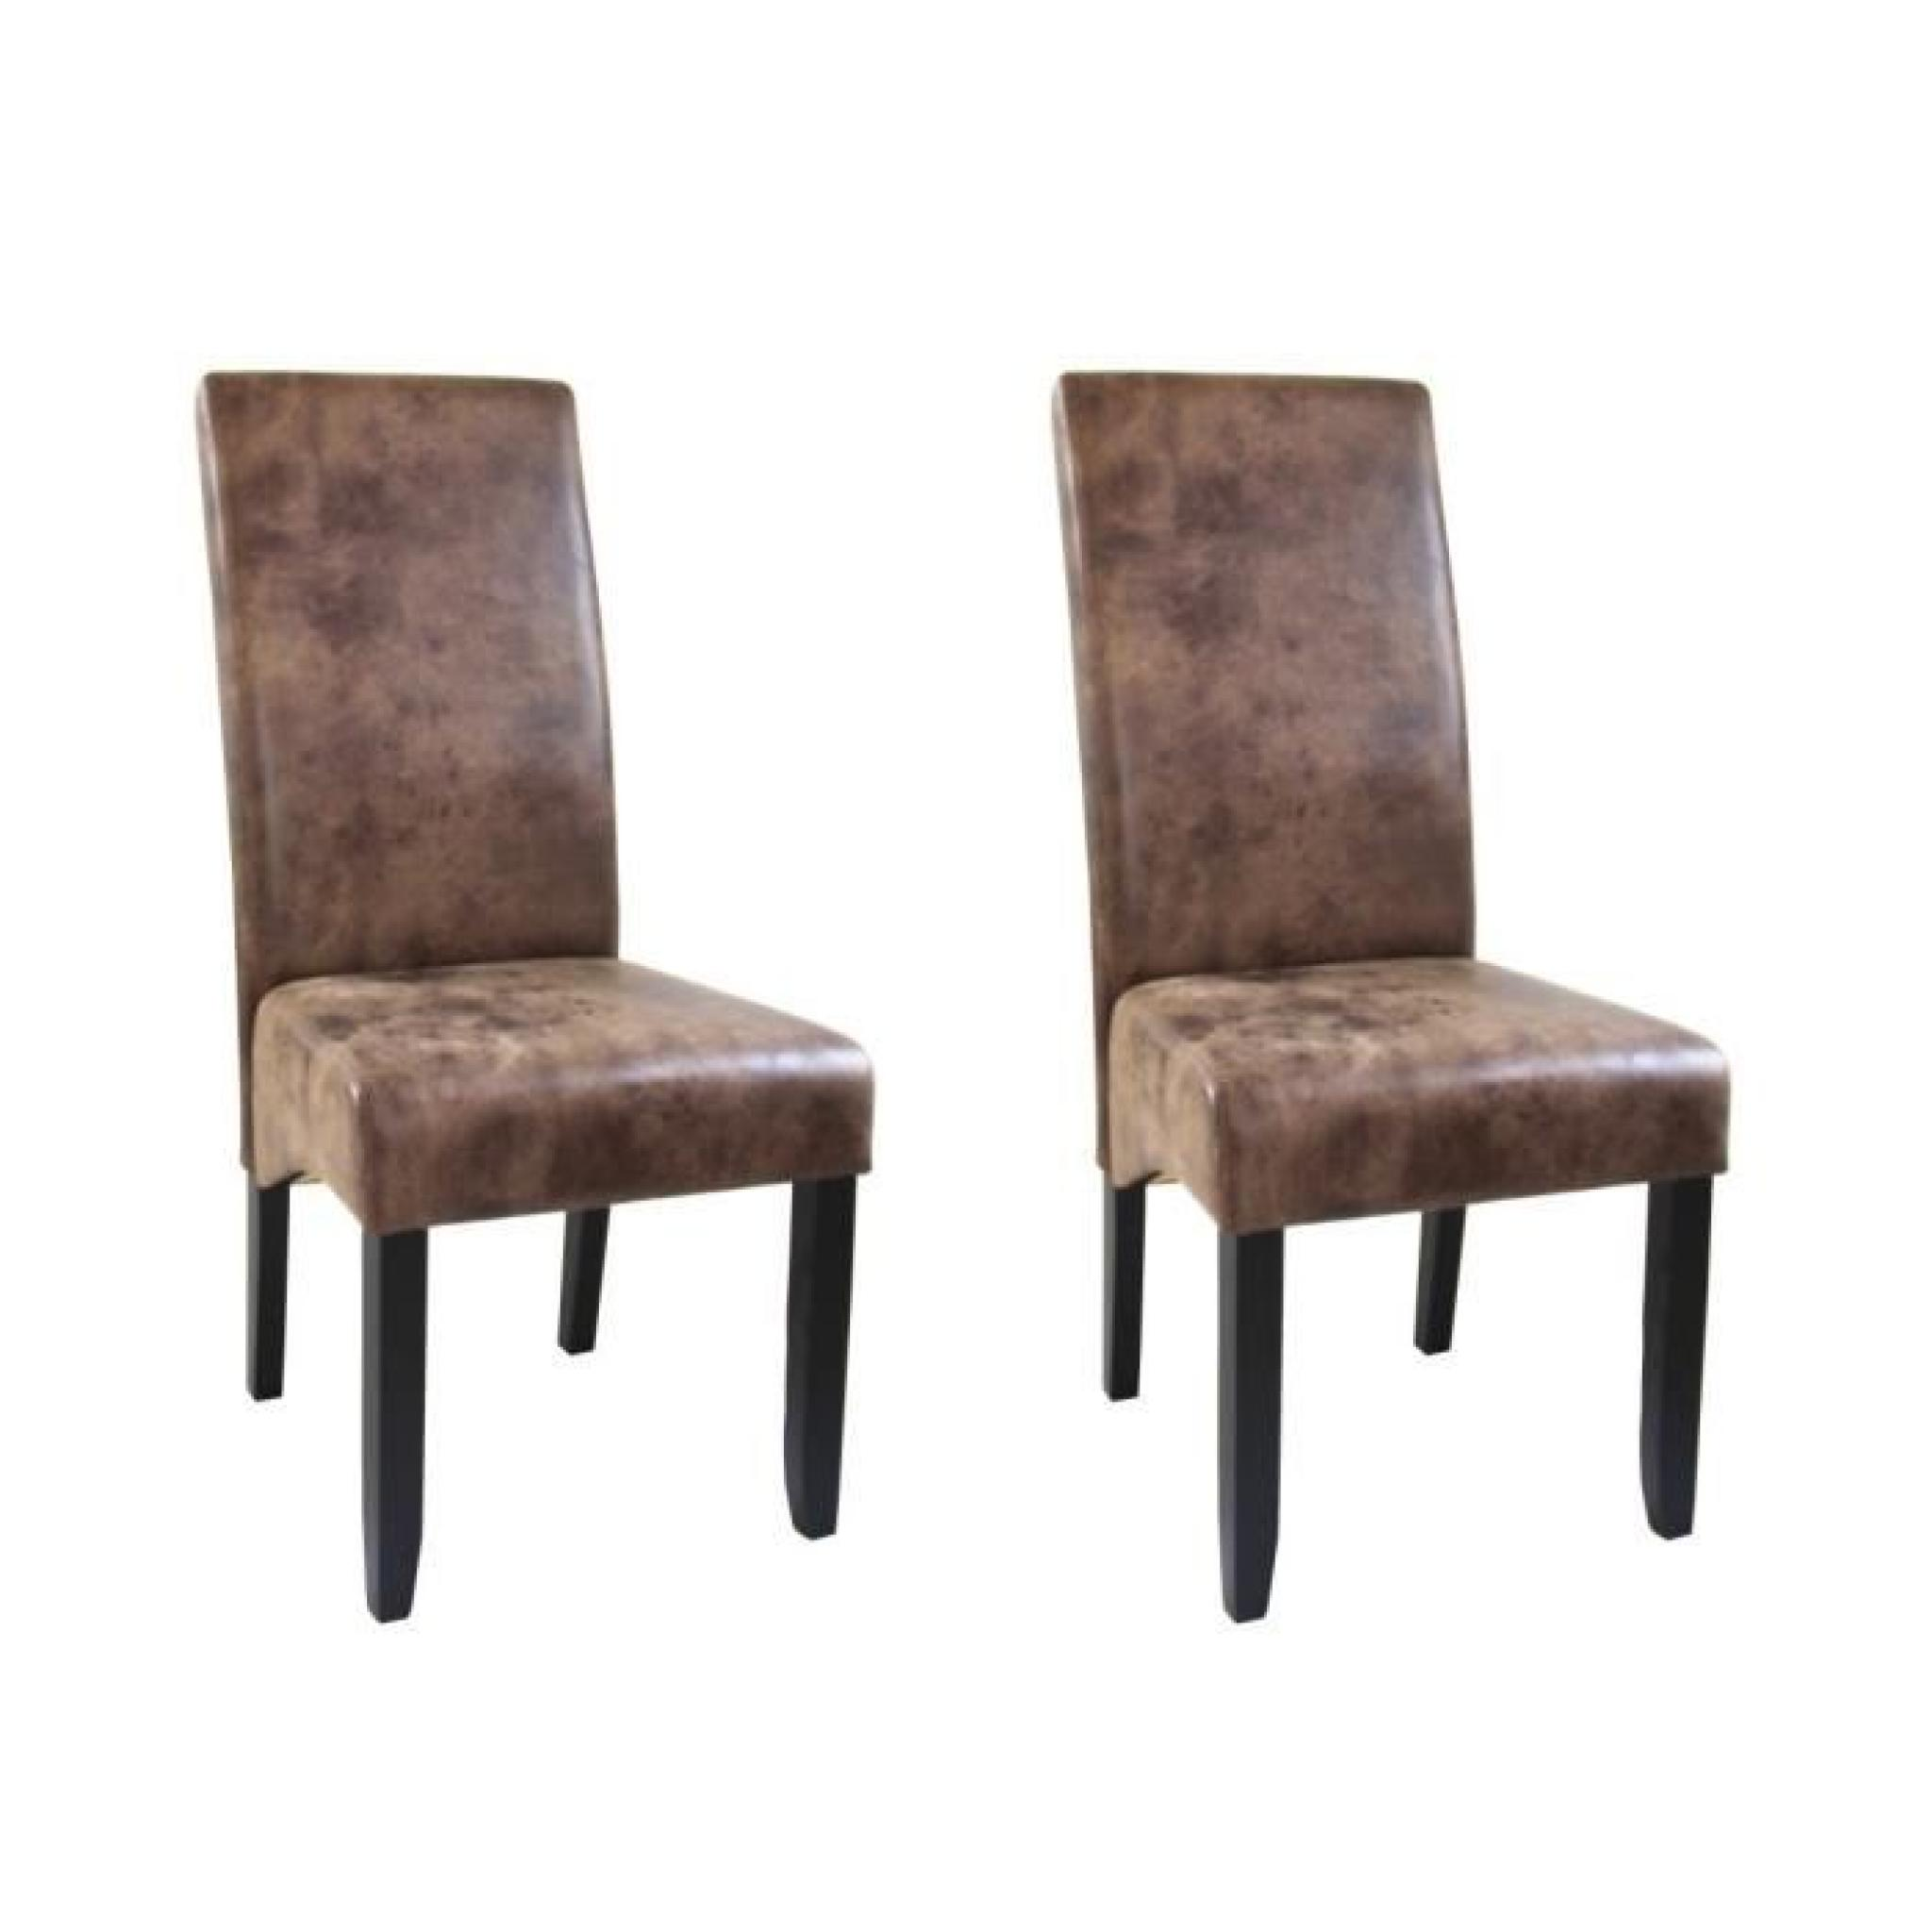 cuba lot de 2 chaises de salle manger style vintage achat vente chaise salle a manger pas. Black Bedroom Furniture Sets. Home Design Ideas